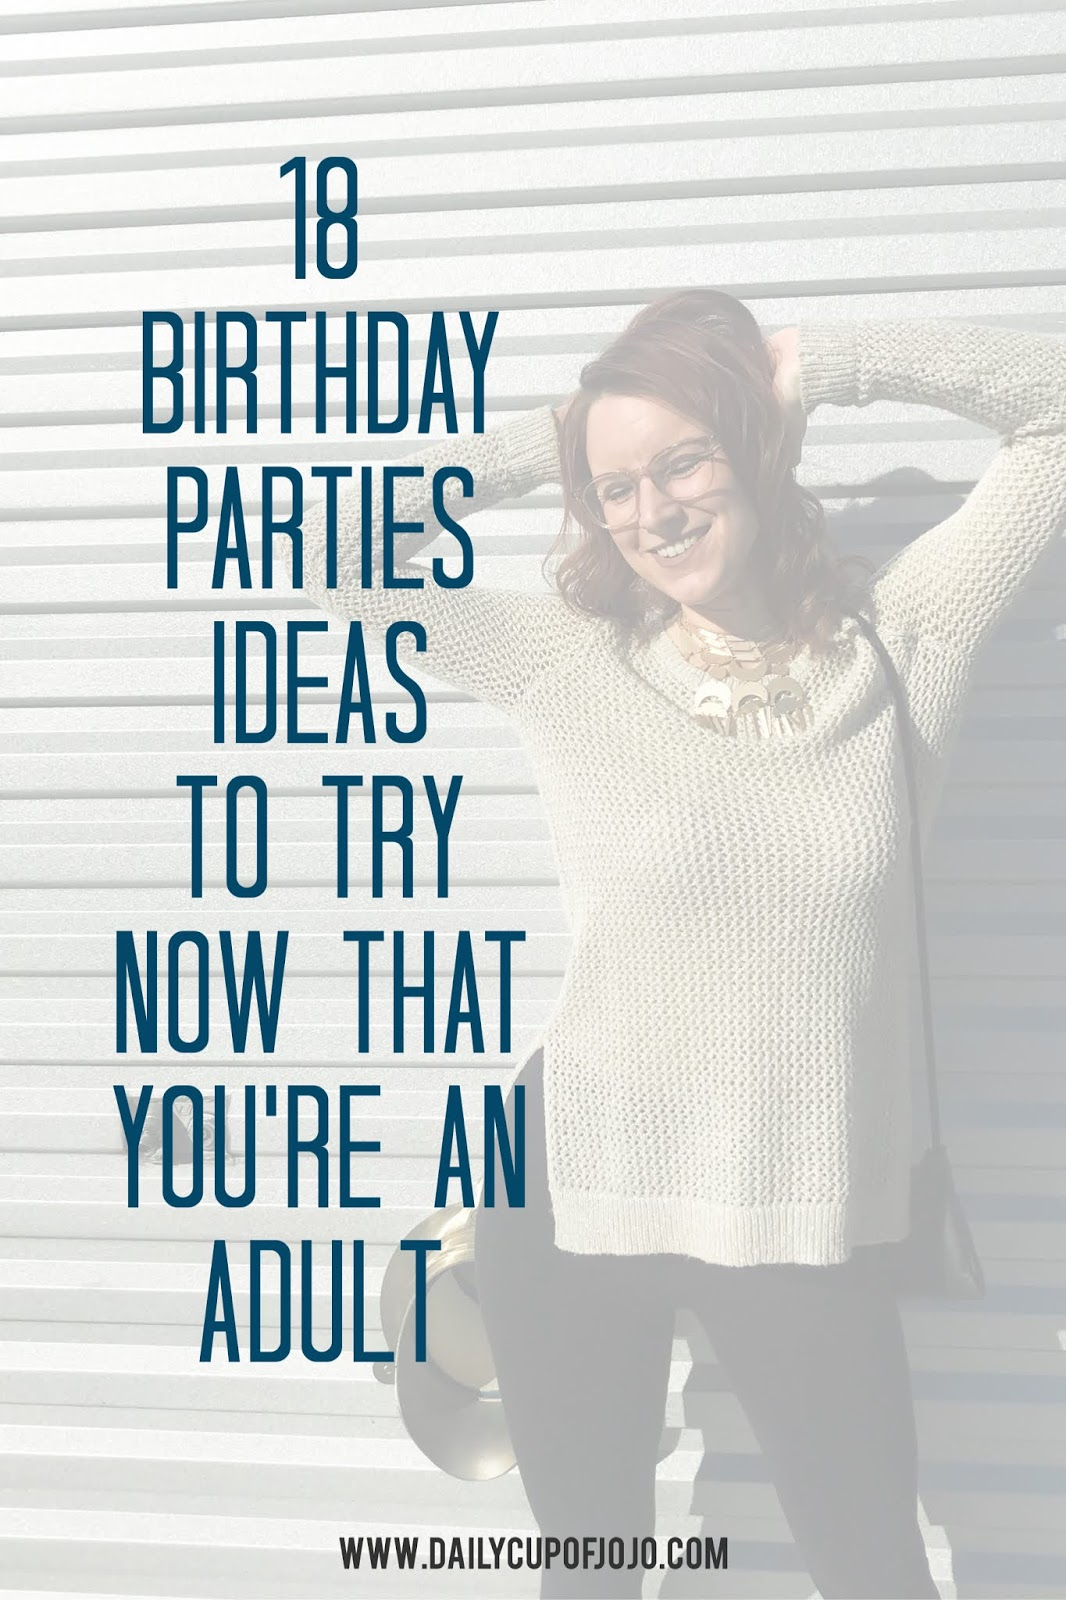 18 Birthday Party Ideas To Try Now That Youre An Adult